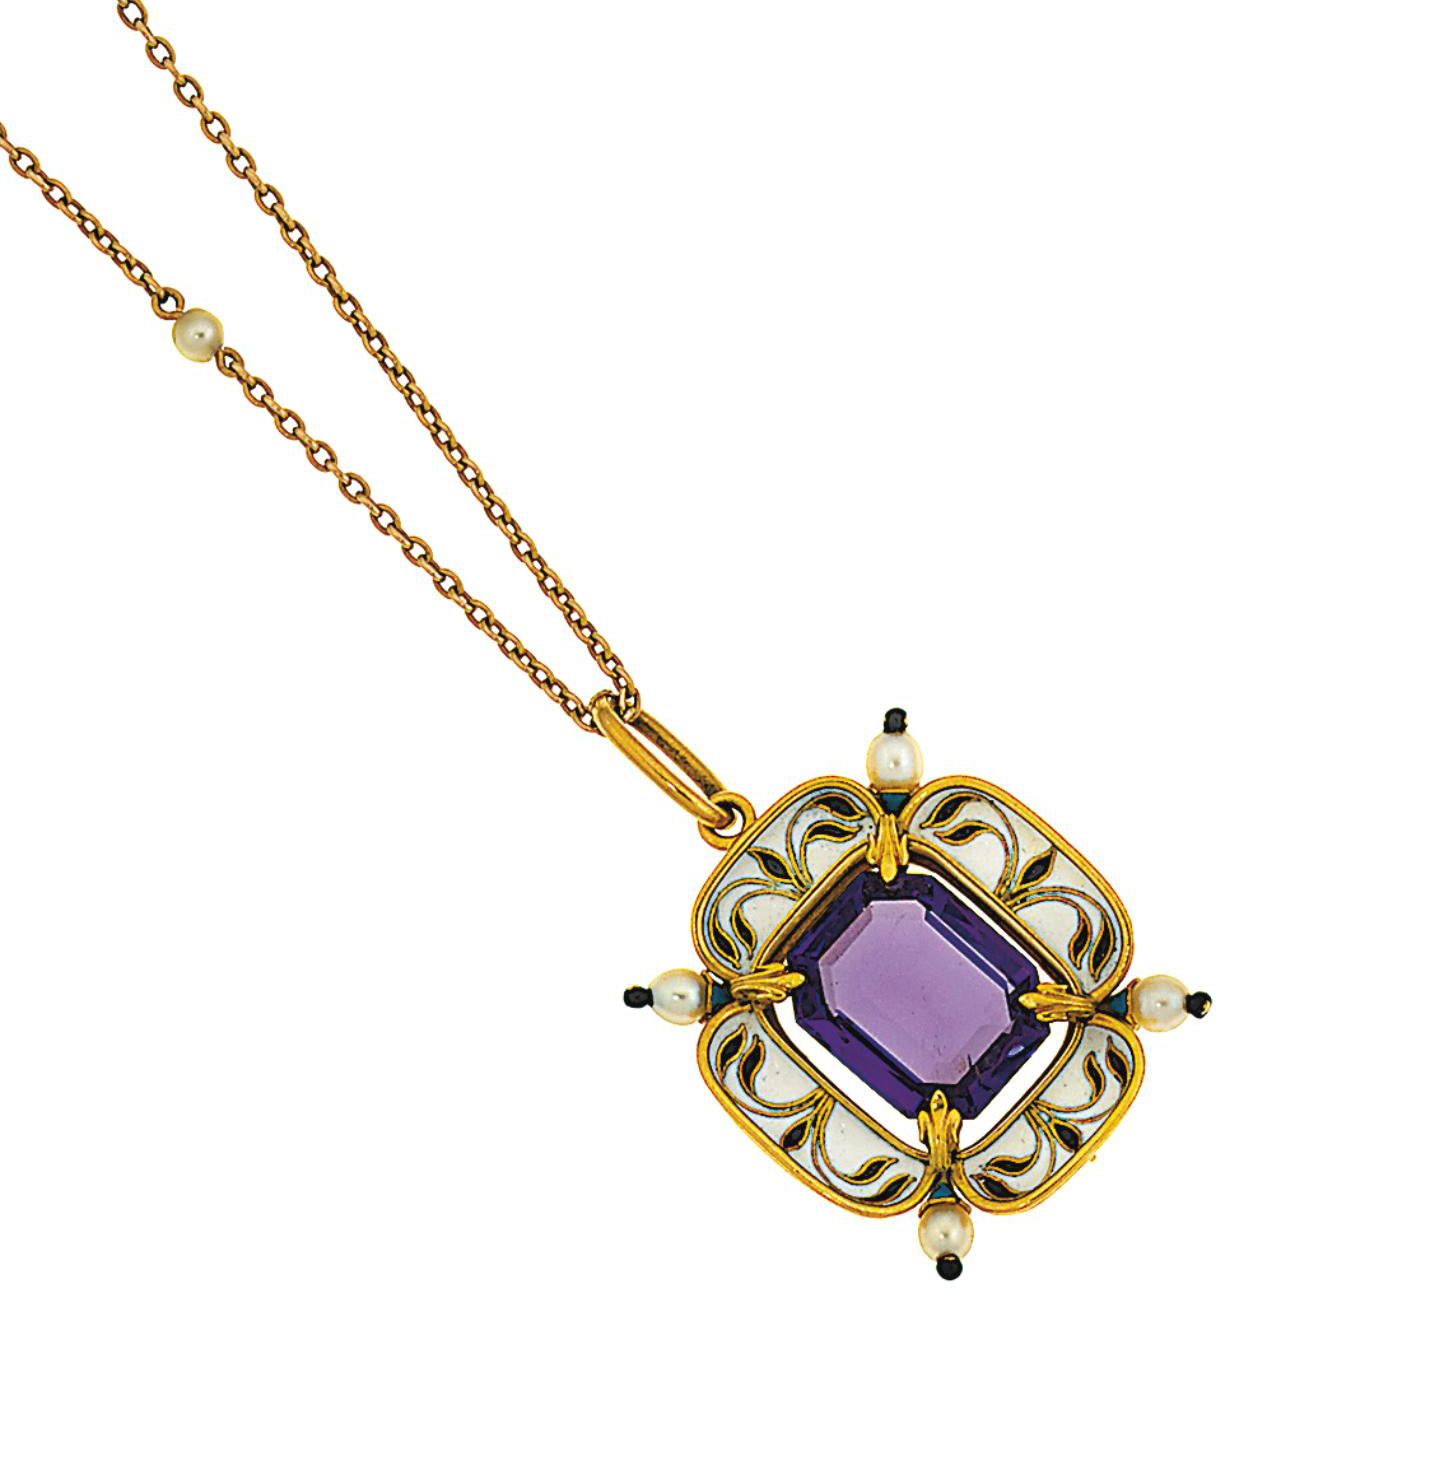 An amethyst, pearl and enamel pendant necklace, by Phillips Bros. and Son